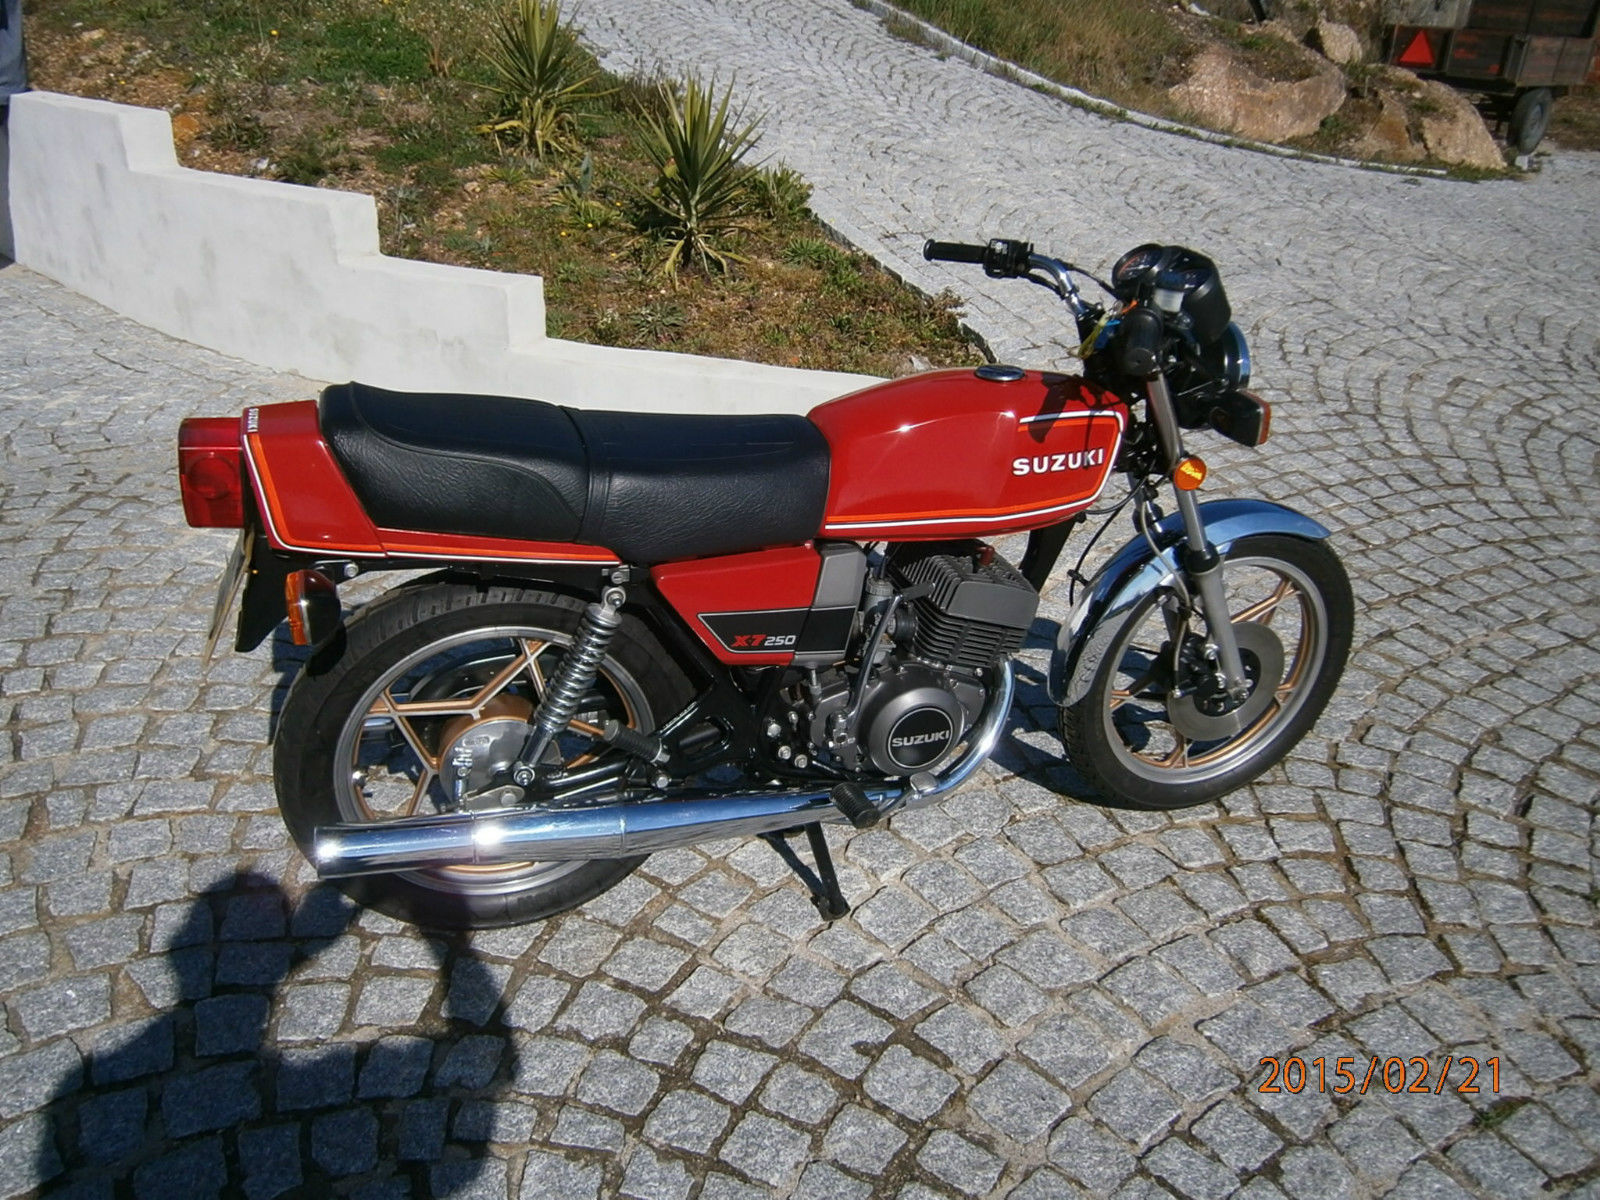 Suzuki X7 - 1982 - Right Side View, Frame and Forks, Seat and Tail Piece, Gas Tank, Wheels and Tyres.